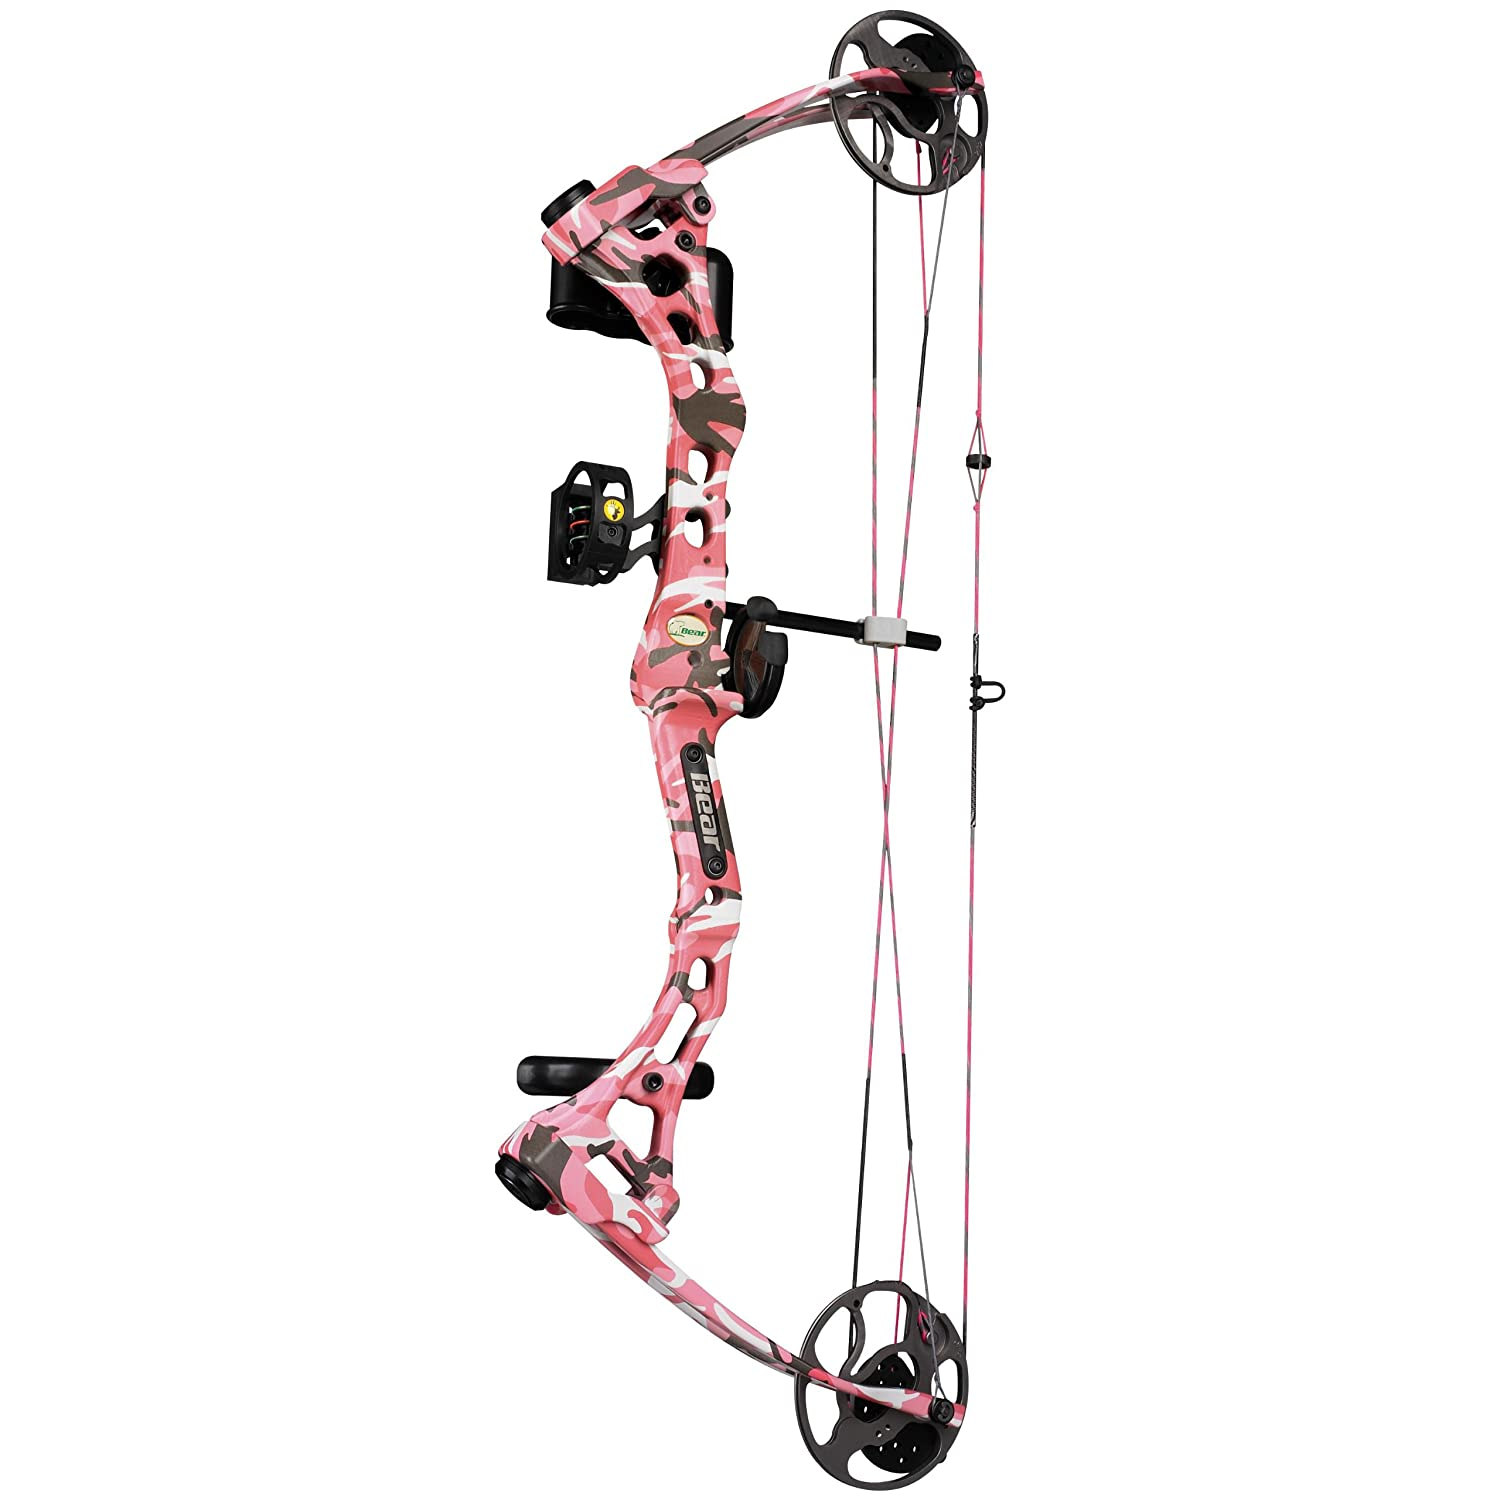 81RA86utQOL. SL1500  What is the Best Compound Bow to buy? Here is the Best Guide